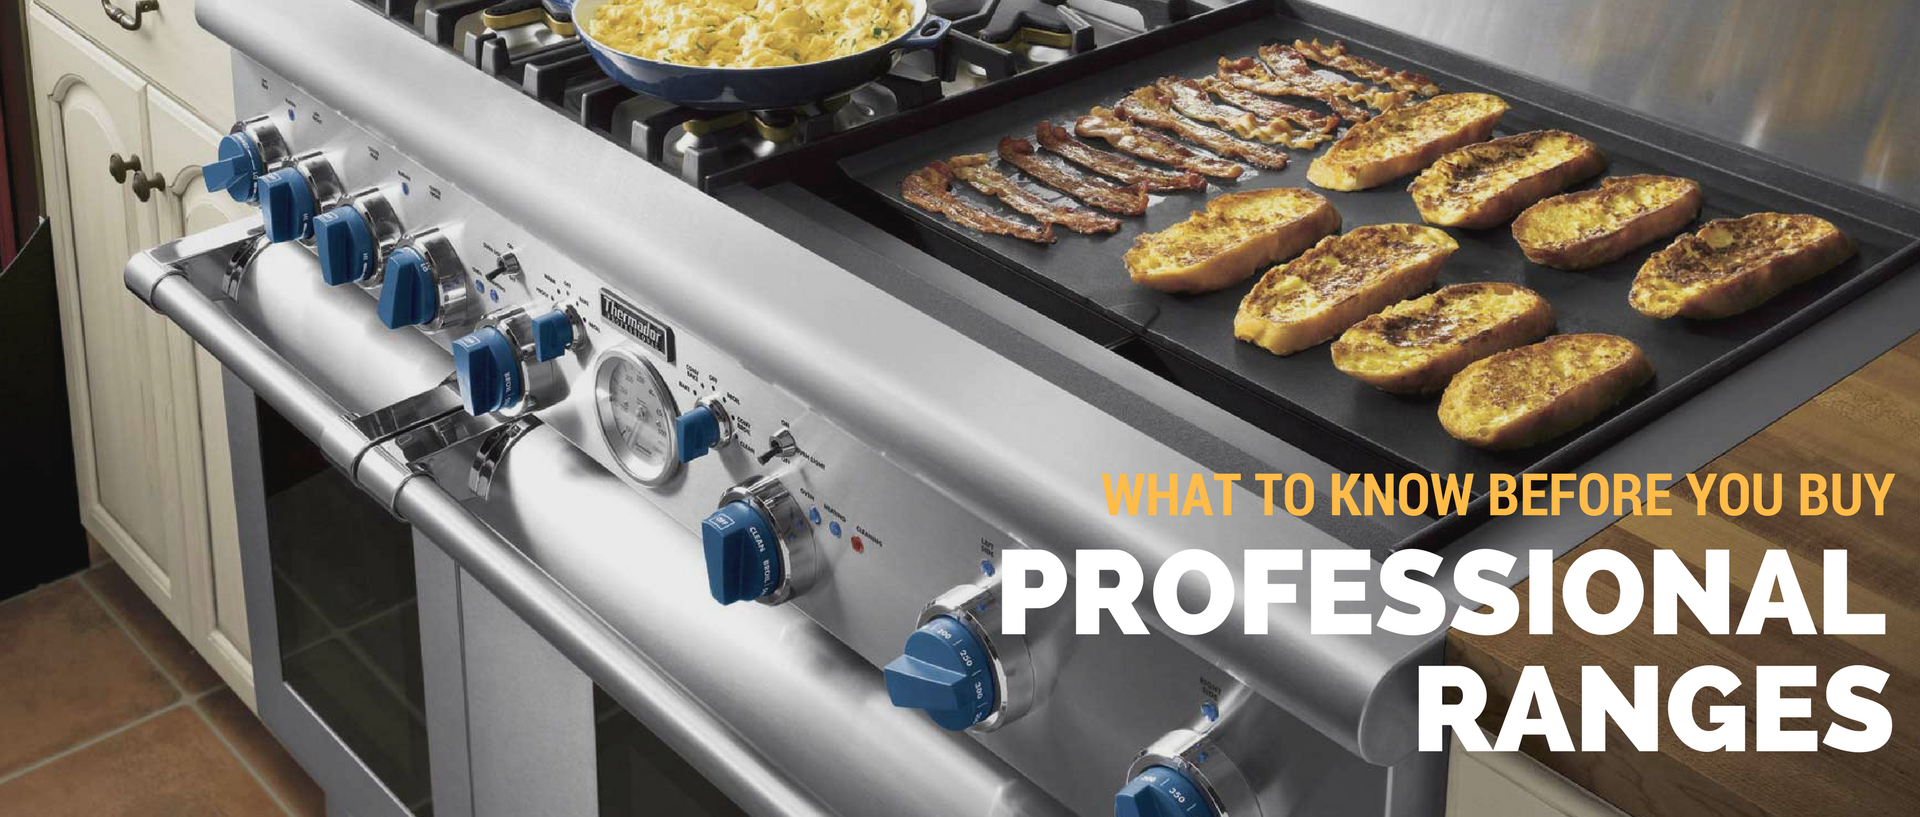 A stainless steel professional range from Thermador with blue knobs, available at Appliances Connection.